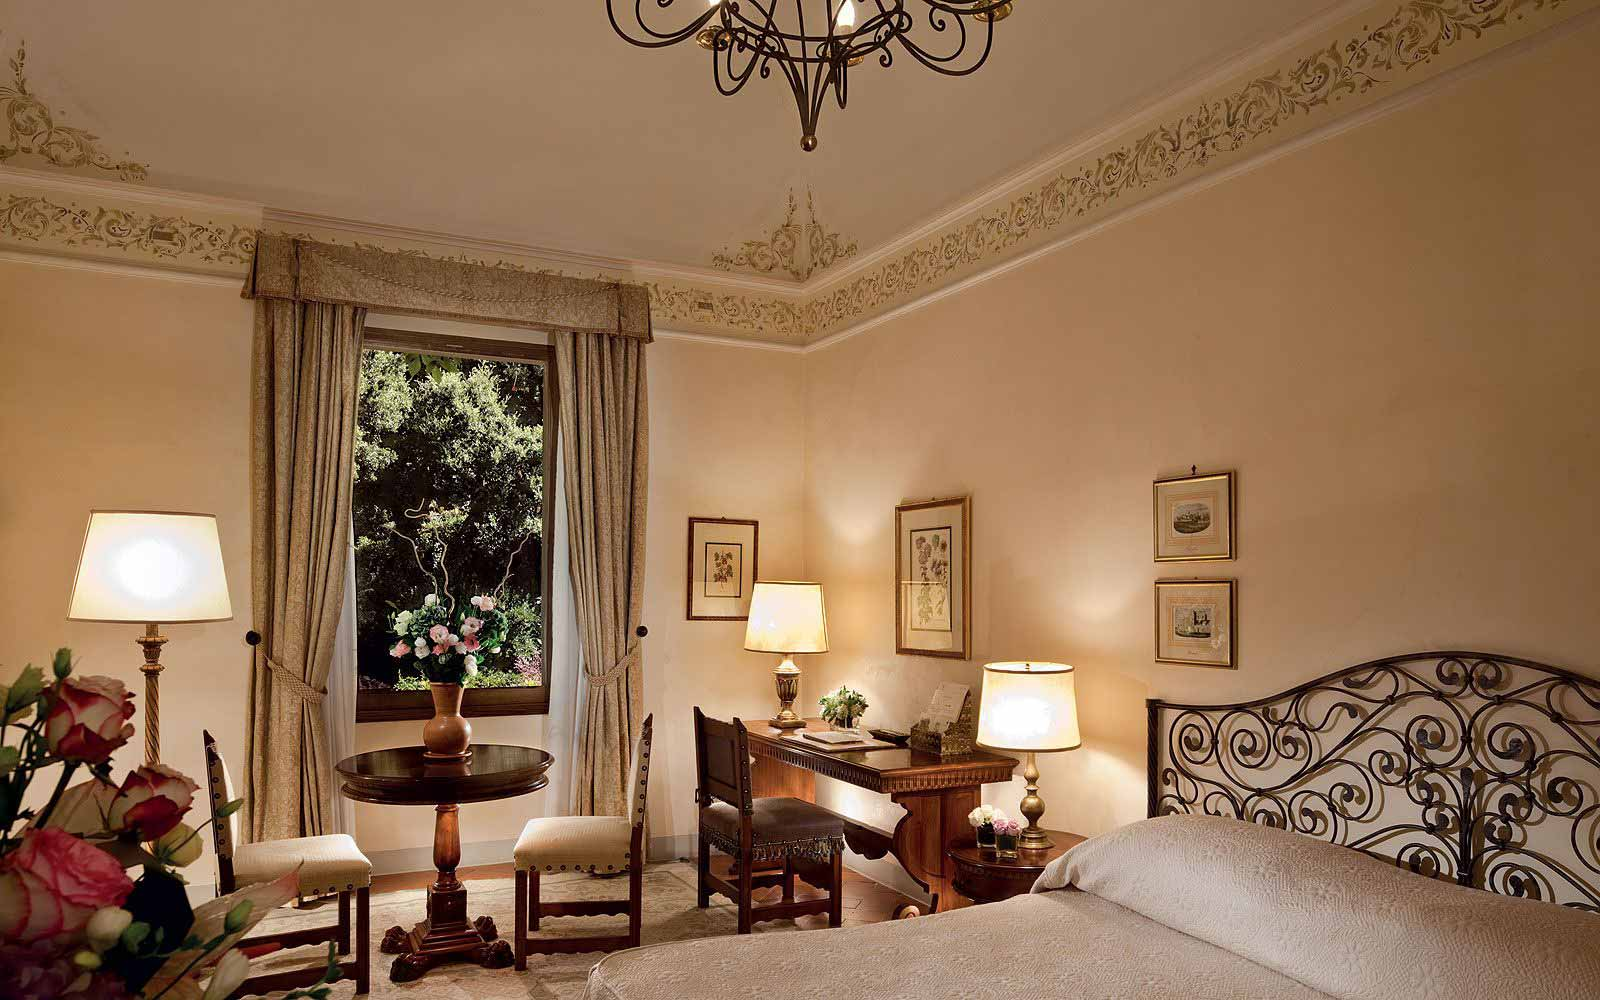 Deluxe Double Room at Belmond Villa San Michele